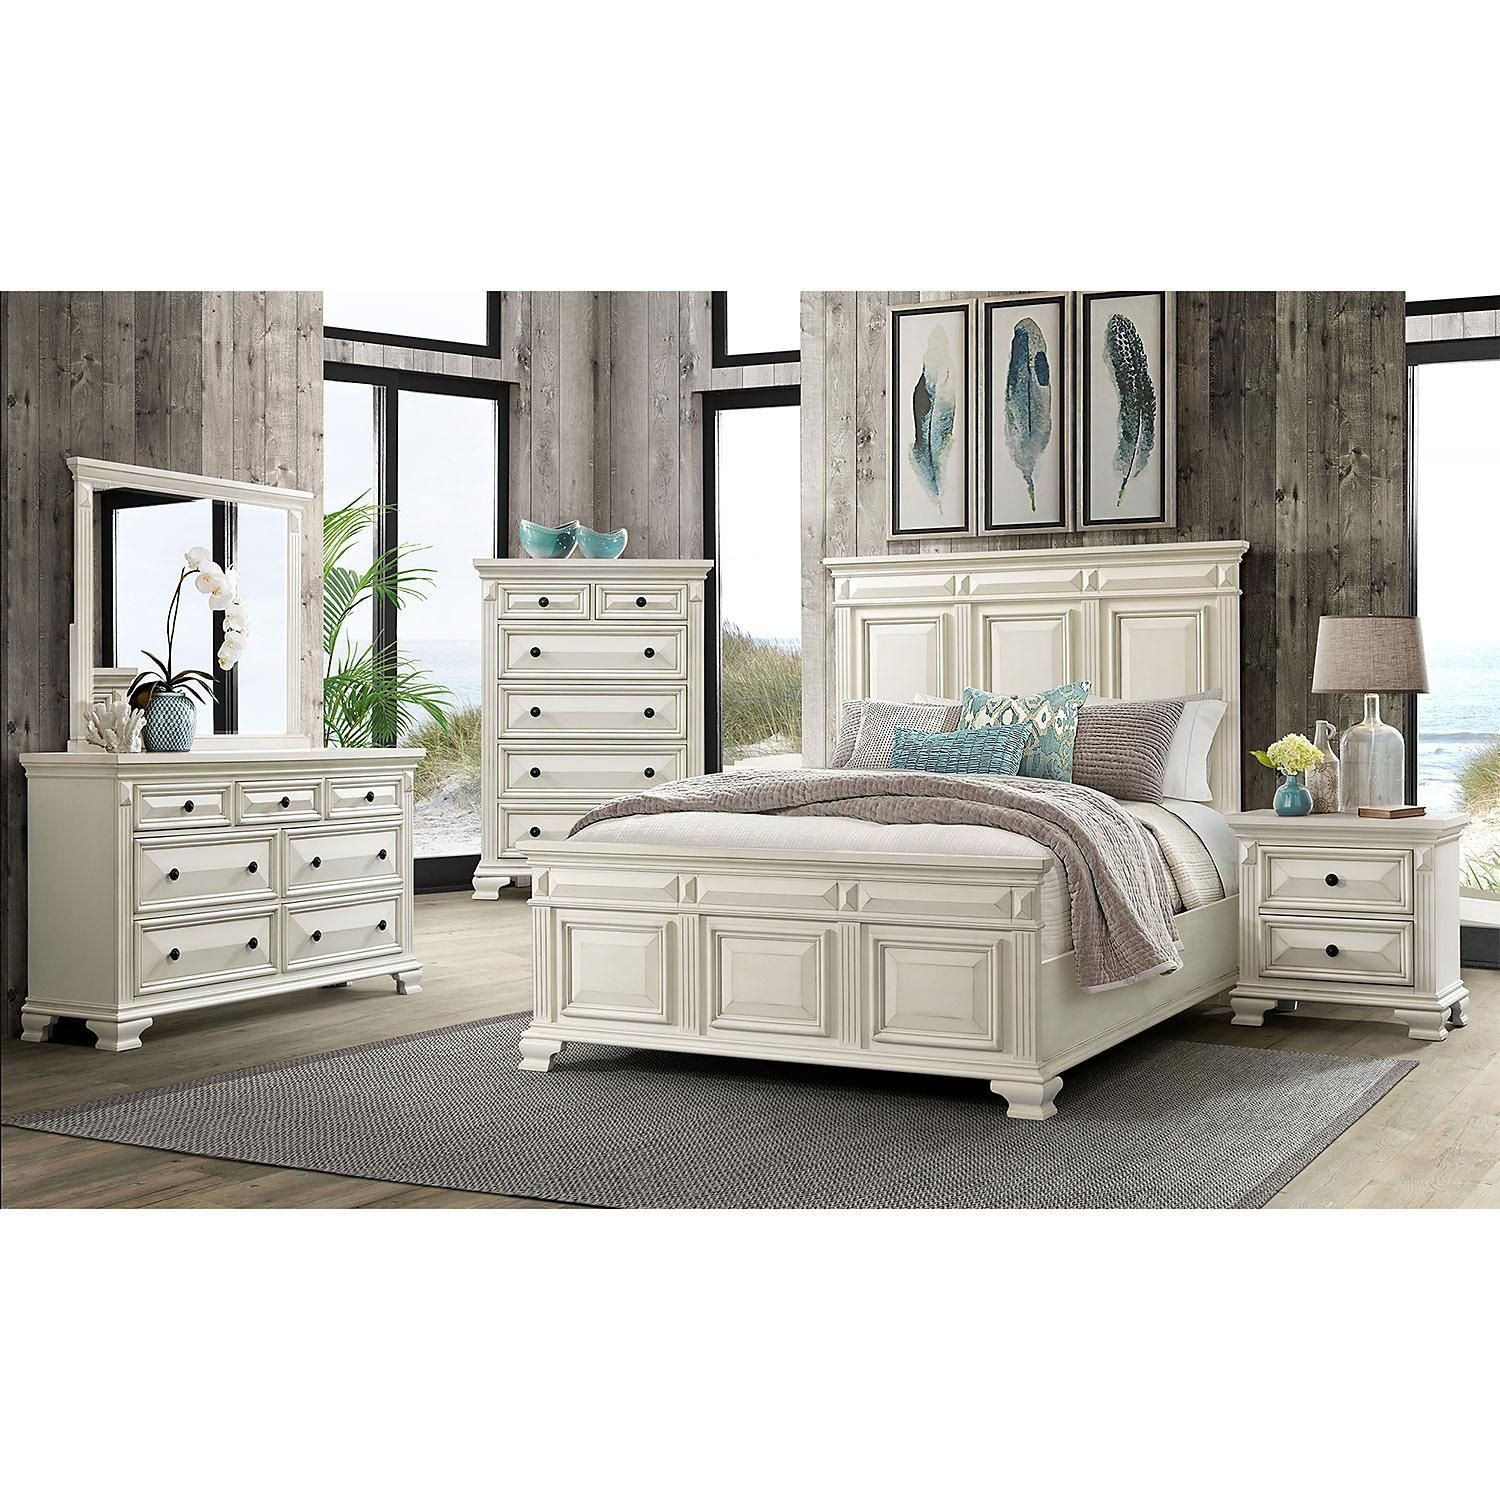 White Bedroom Furniture Set Inspirational $1599 00 society Den Trent Panel 6 Piece King Bedroom Set